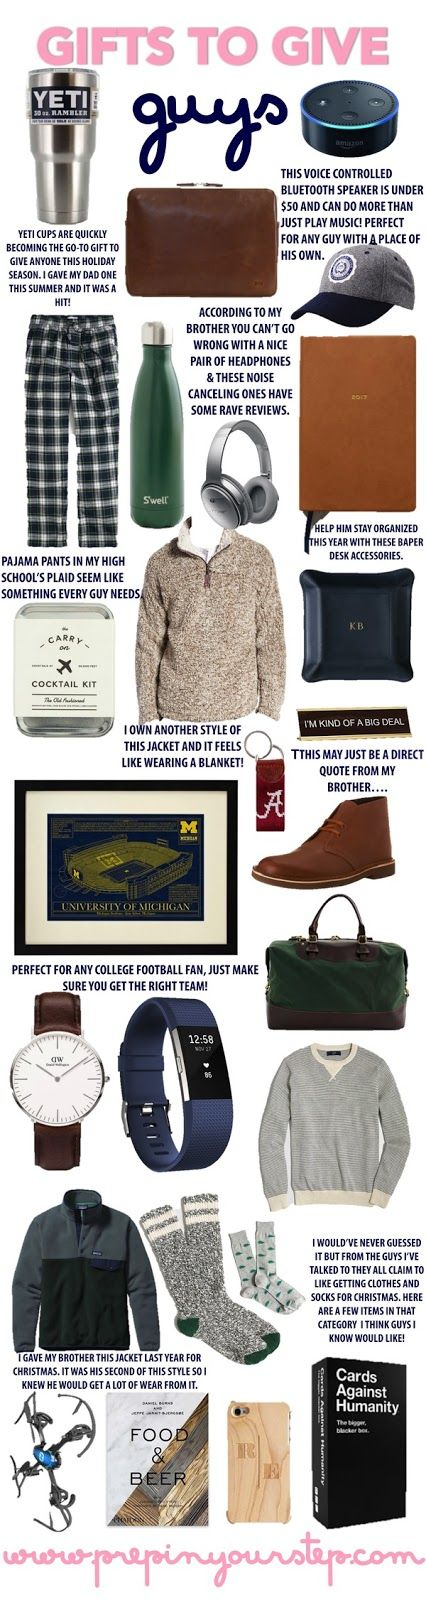 Best 25 Birthday Gifts For Men Ideas On Pinterest Diy 30th Gift 40th And Valentines Day Him